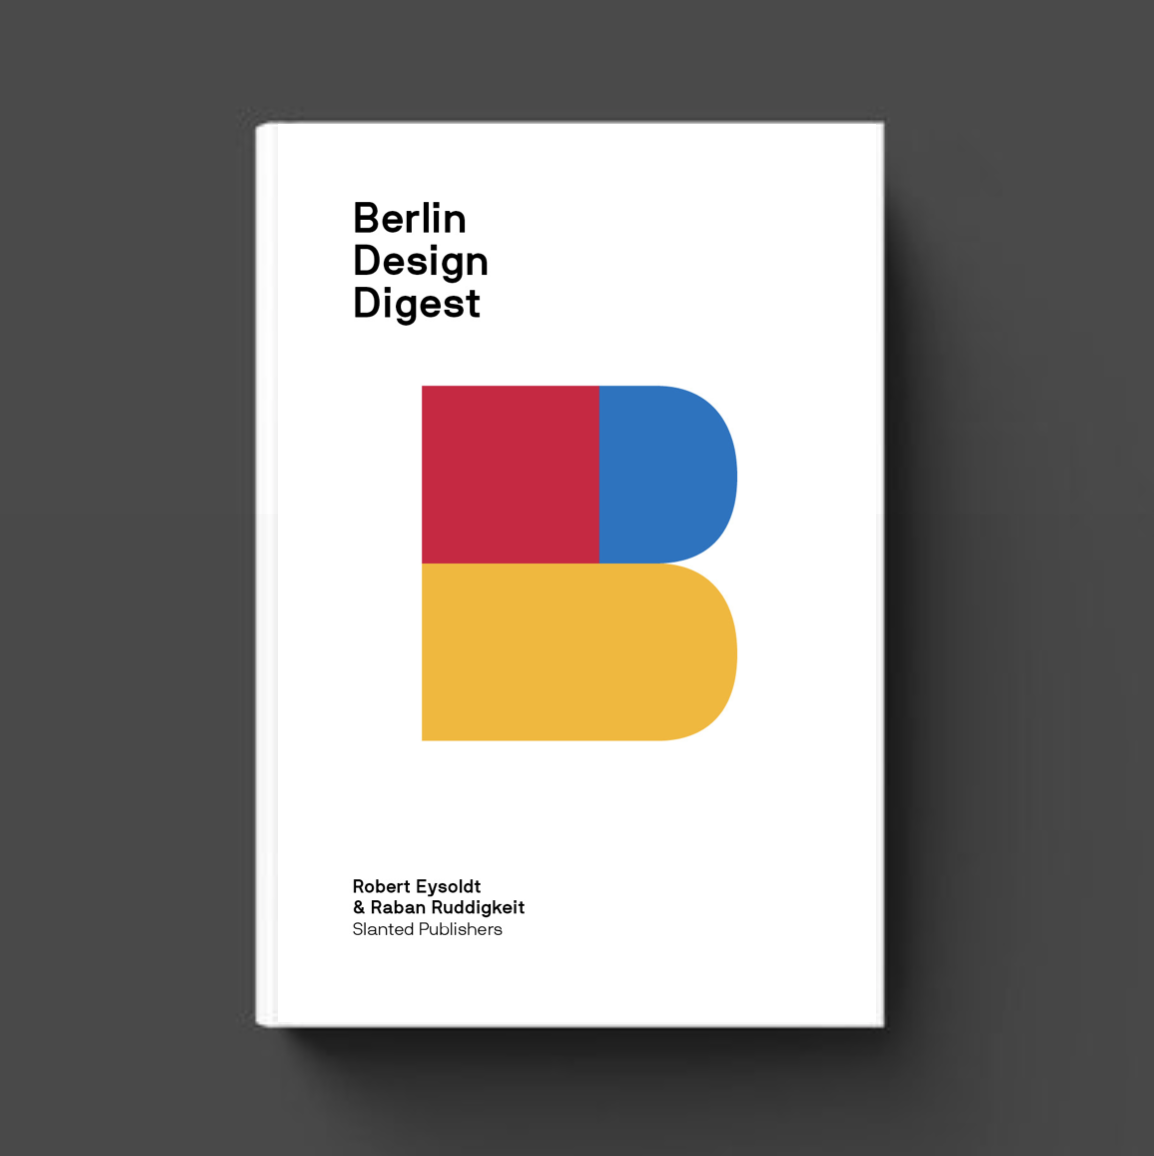 Berlin Design Digest, 100 projects, products and processes that connect Berlin with the world